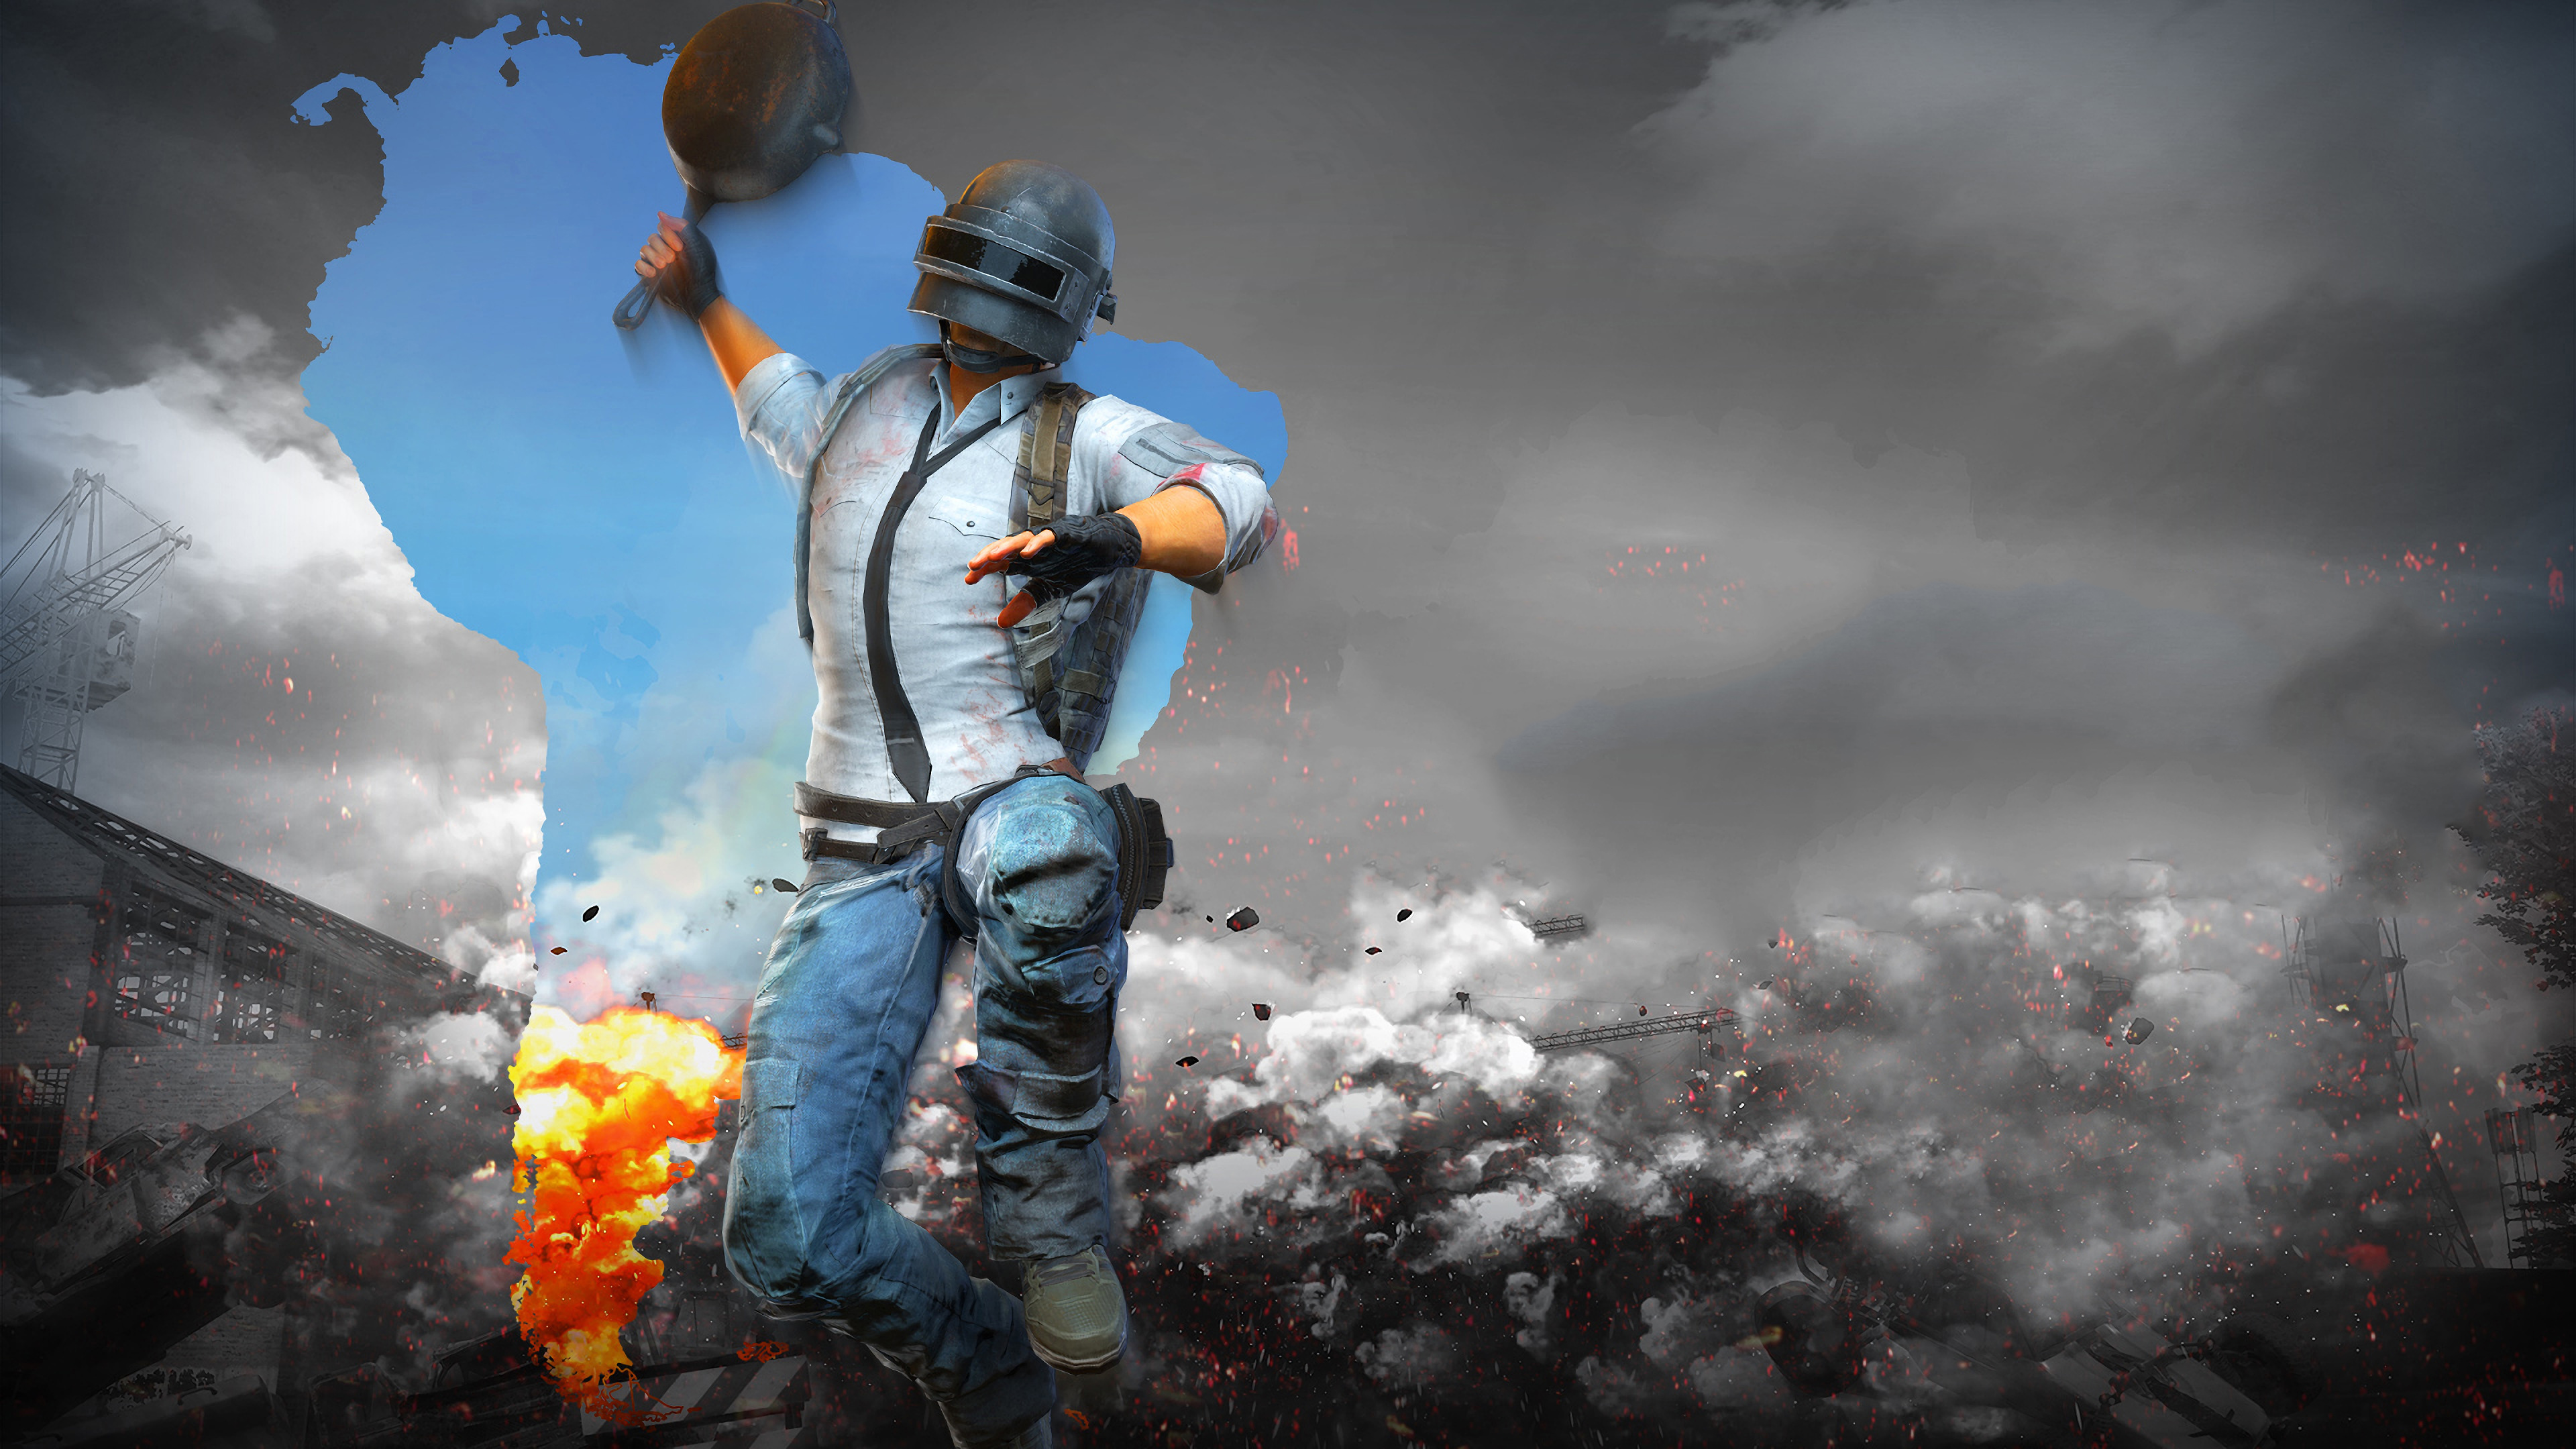 Pubg Mobile Wallpapers For Phone: PUBG Helmet Man With Pan 4k, HD Games, 4k Wallpapers